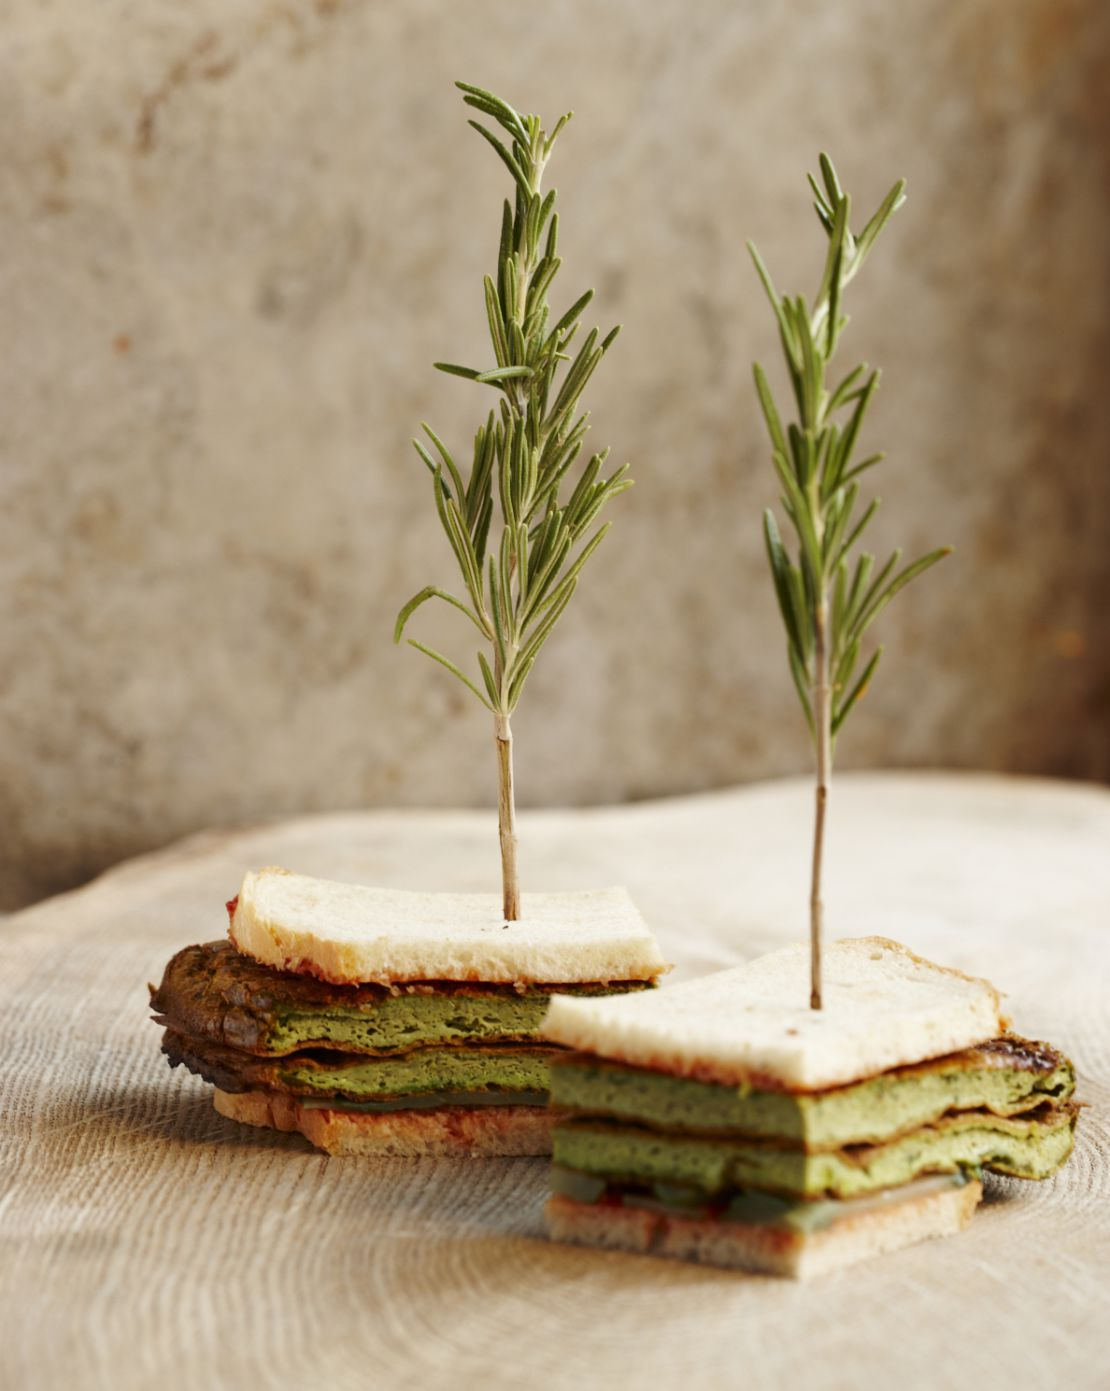 sandwich-on-the-way-home-met-tuinkruidenomelet-door-sofie-dumont